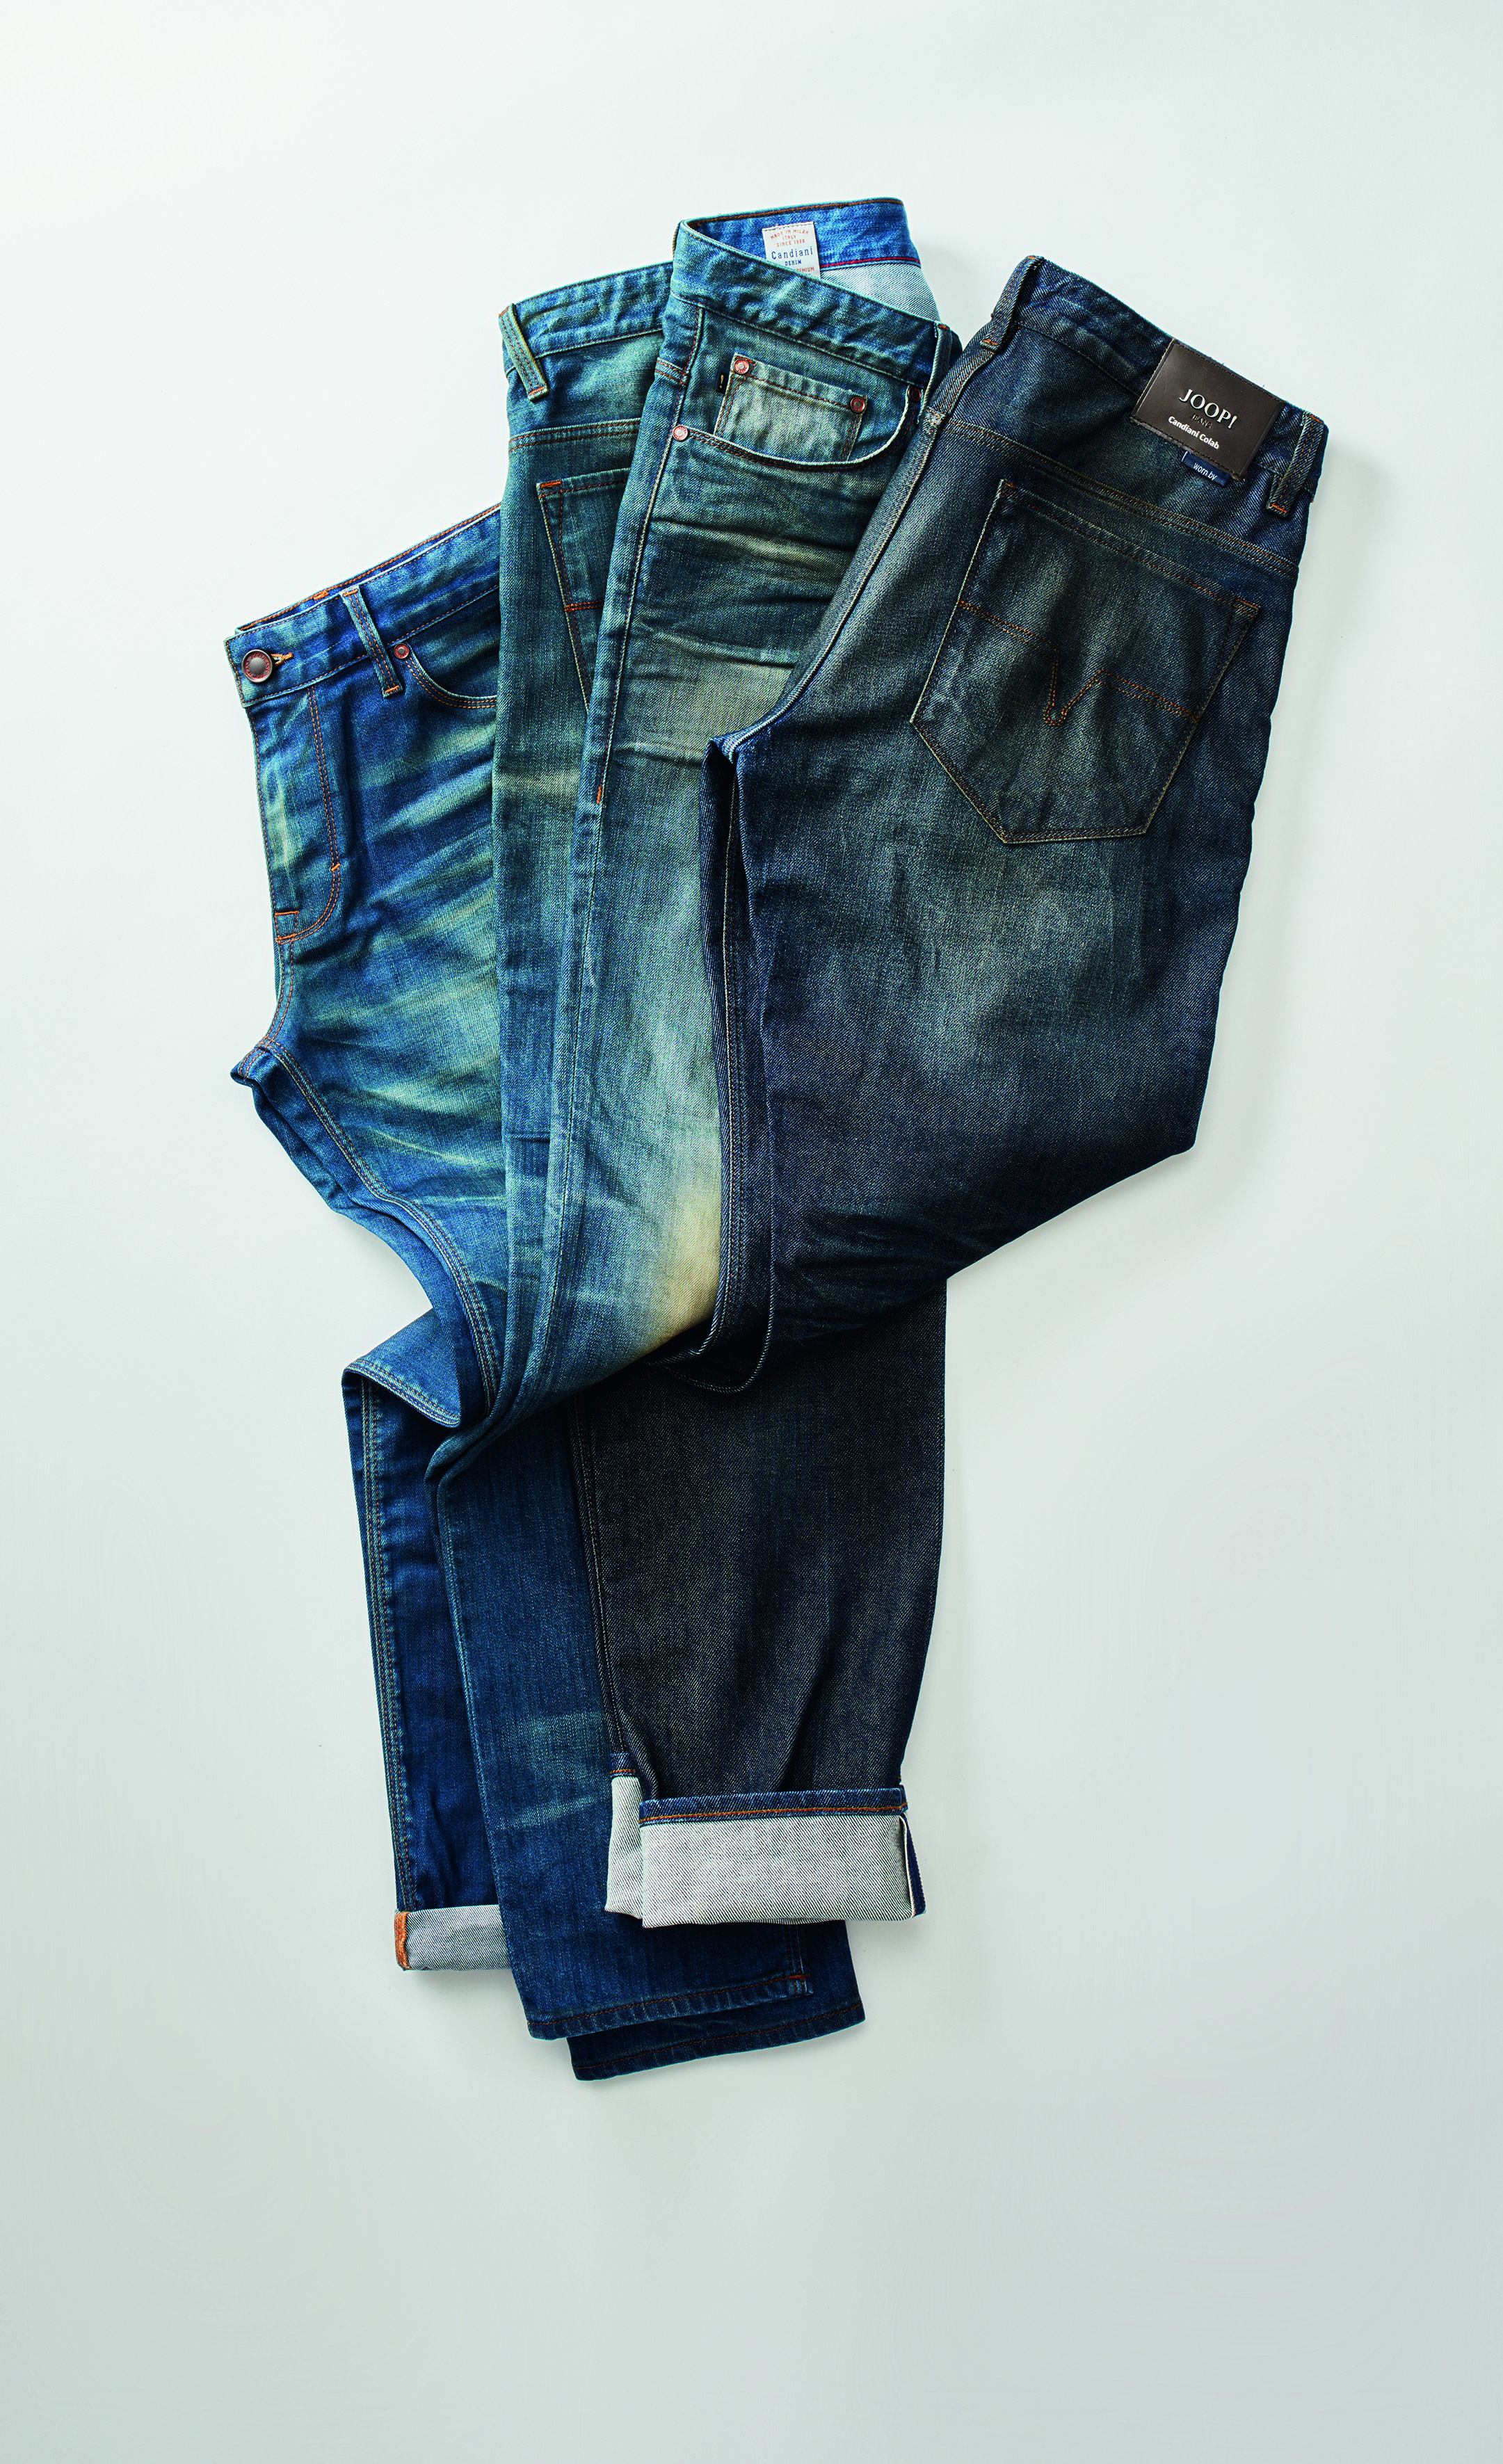 Joop! Jeans x Candiani